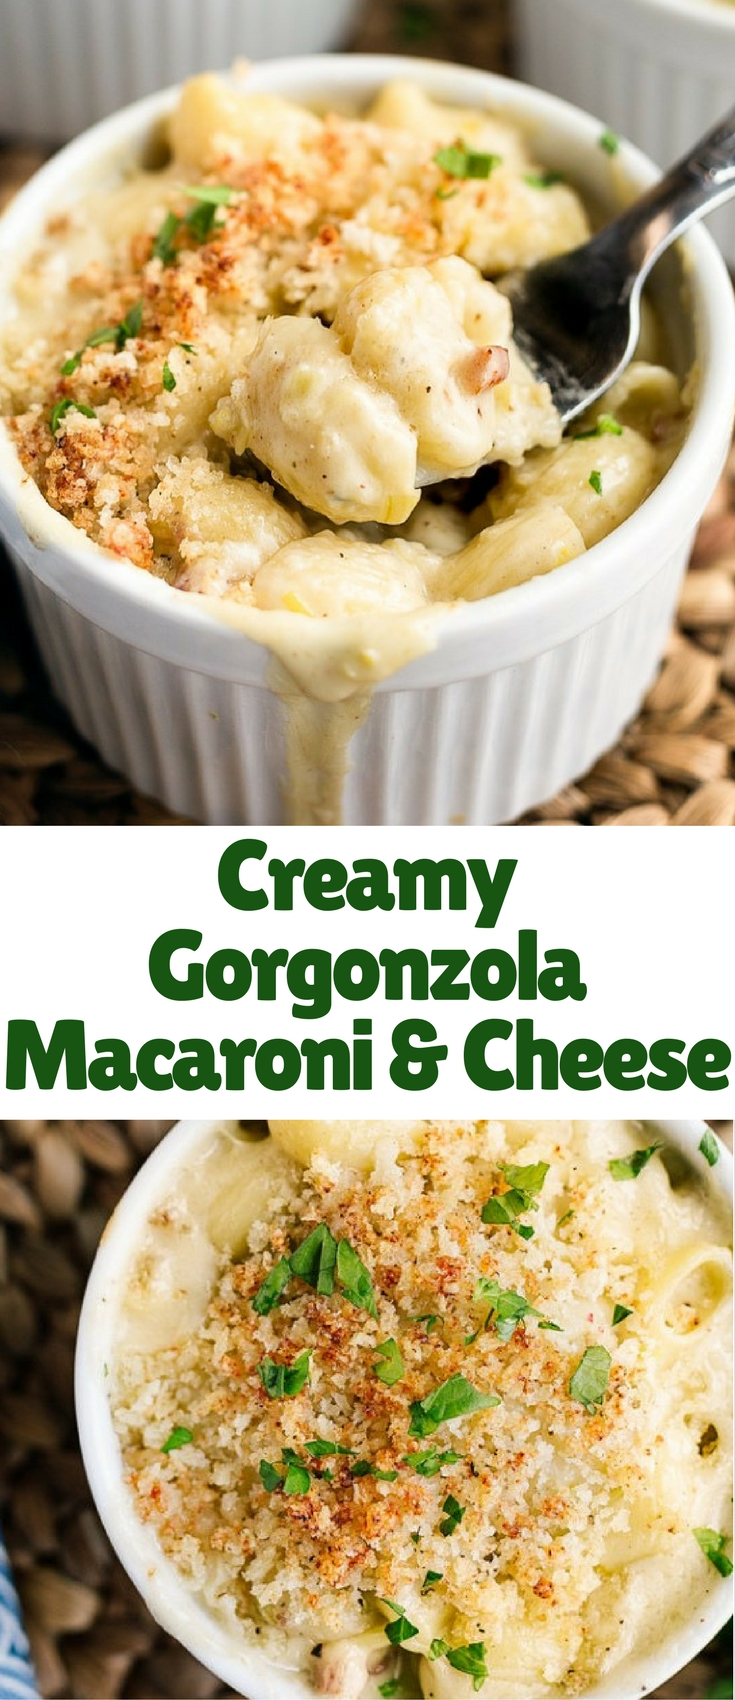 Creamy Gorgonzola Macaroni and Cheese with sweet caramelized leeks, salty pancetta, and a blend of three rich cheeses is an elegant twist on a comfort food classic. Don't forget the cheesy, crunchy, buttery bread crumbs on top!